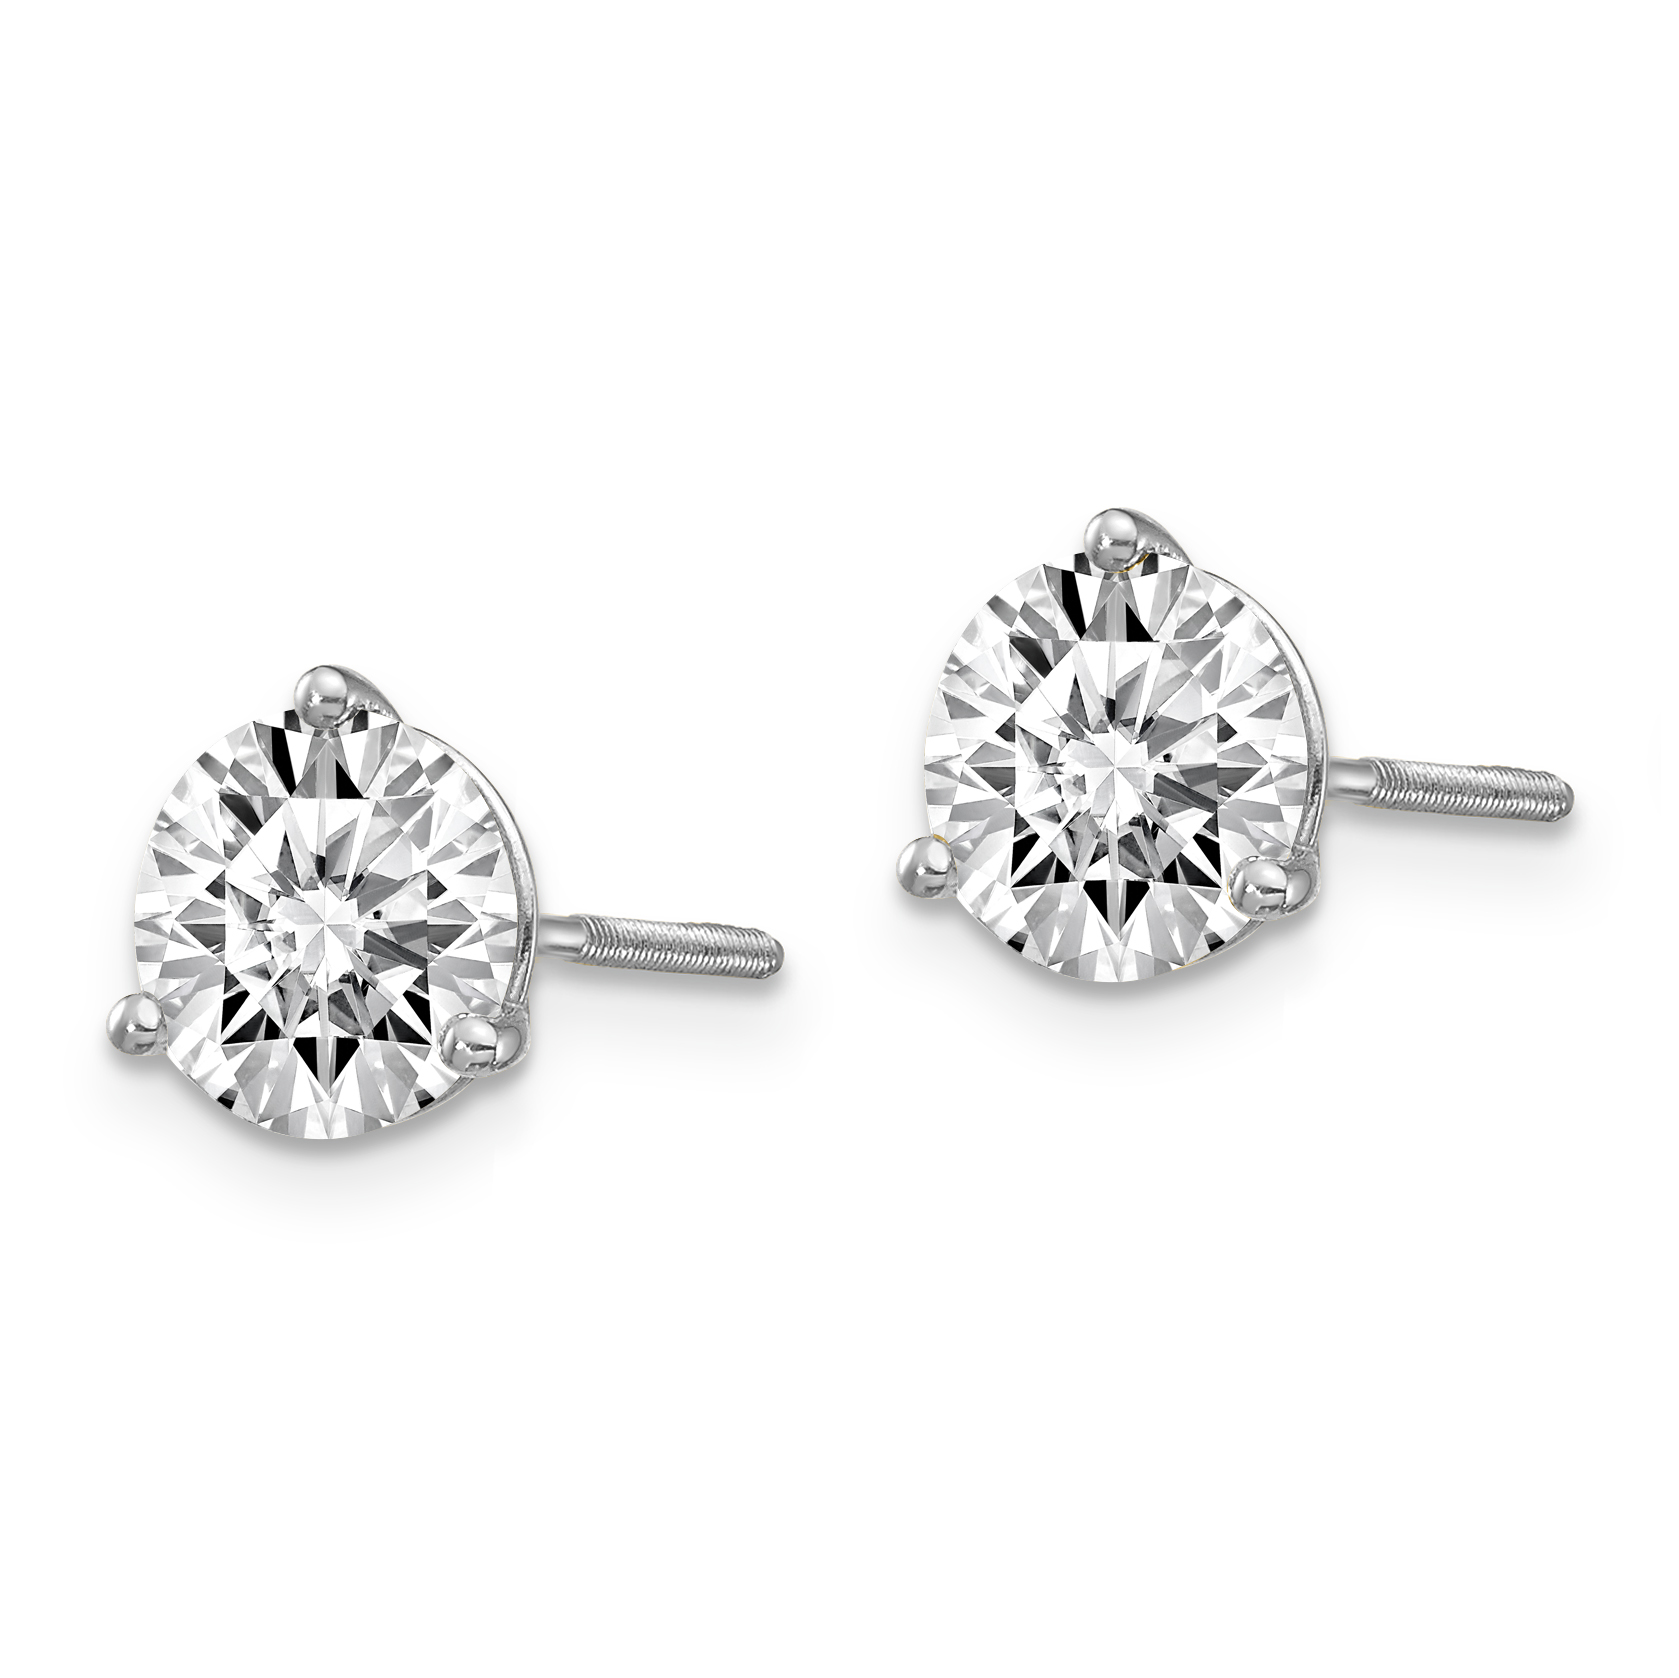 14k White Gold 2ctw Si1/si2 G H I Lab Grown Diamond 3 Prg Screwbk Earrings Stud Fine Jewelry Gifts For Women For Her - image 1 de 2